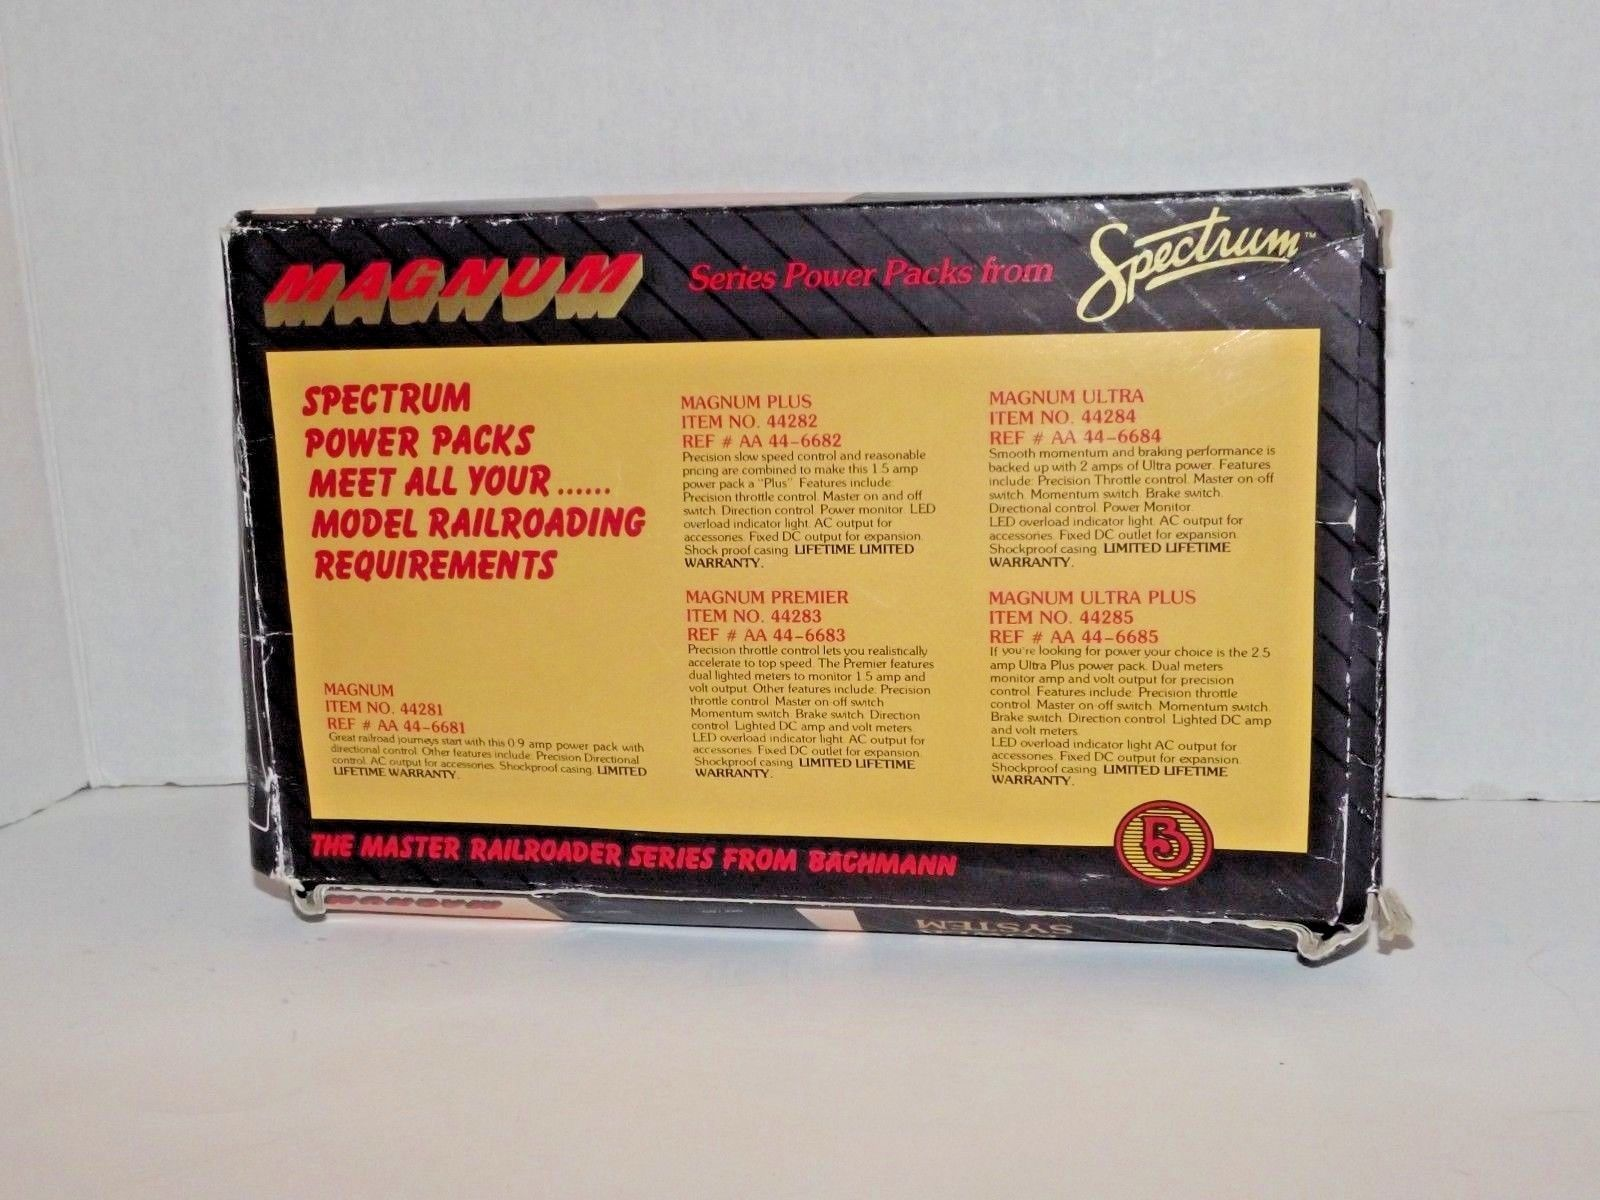 Spectrum Magnum Model Railroad Power System and 50 similar items